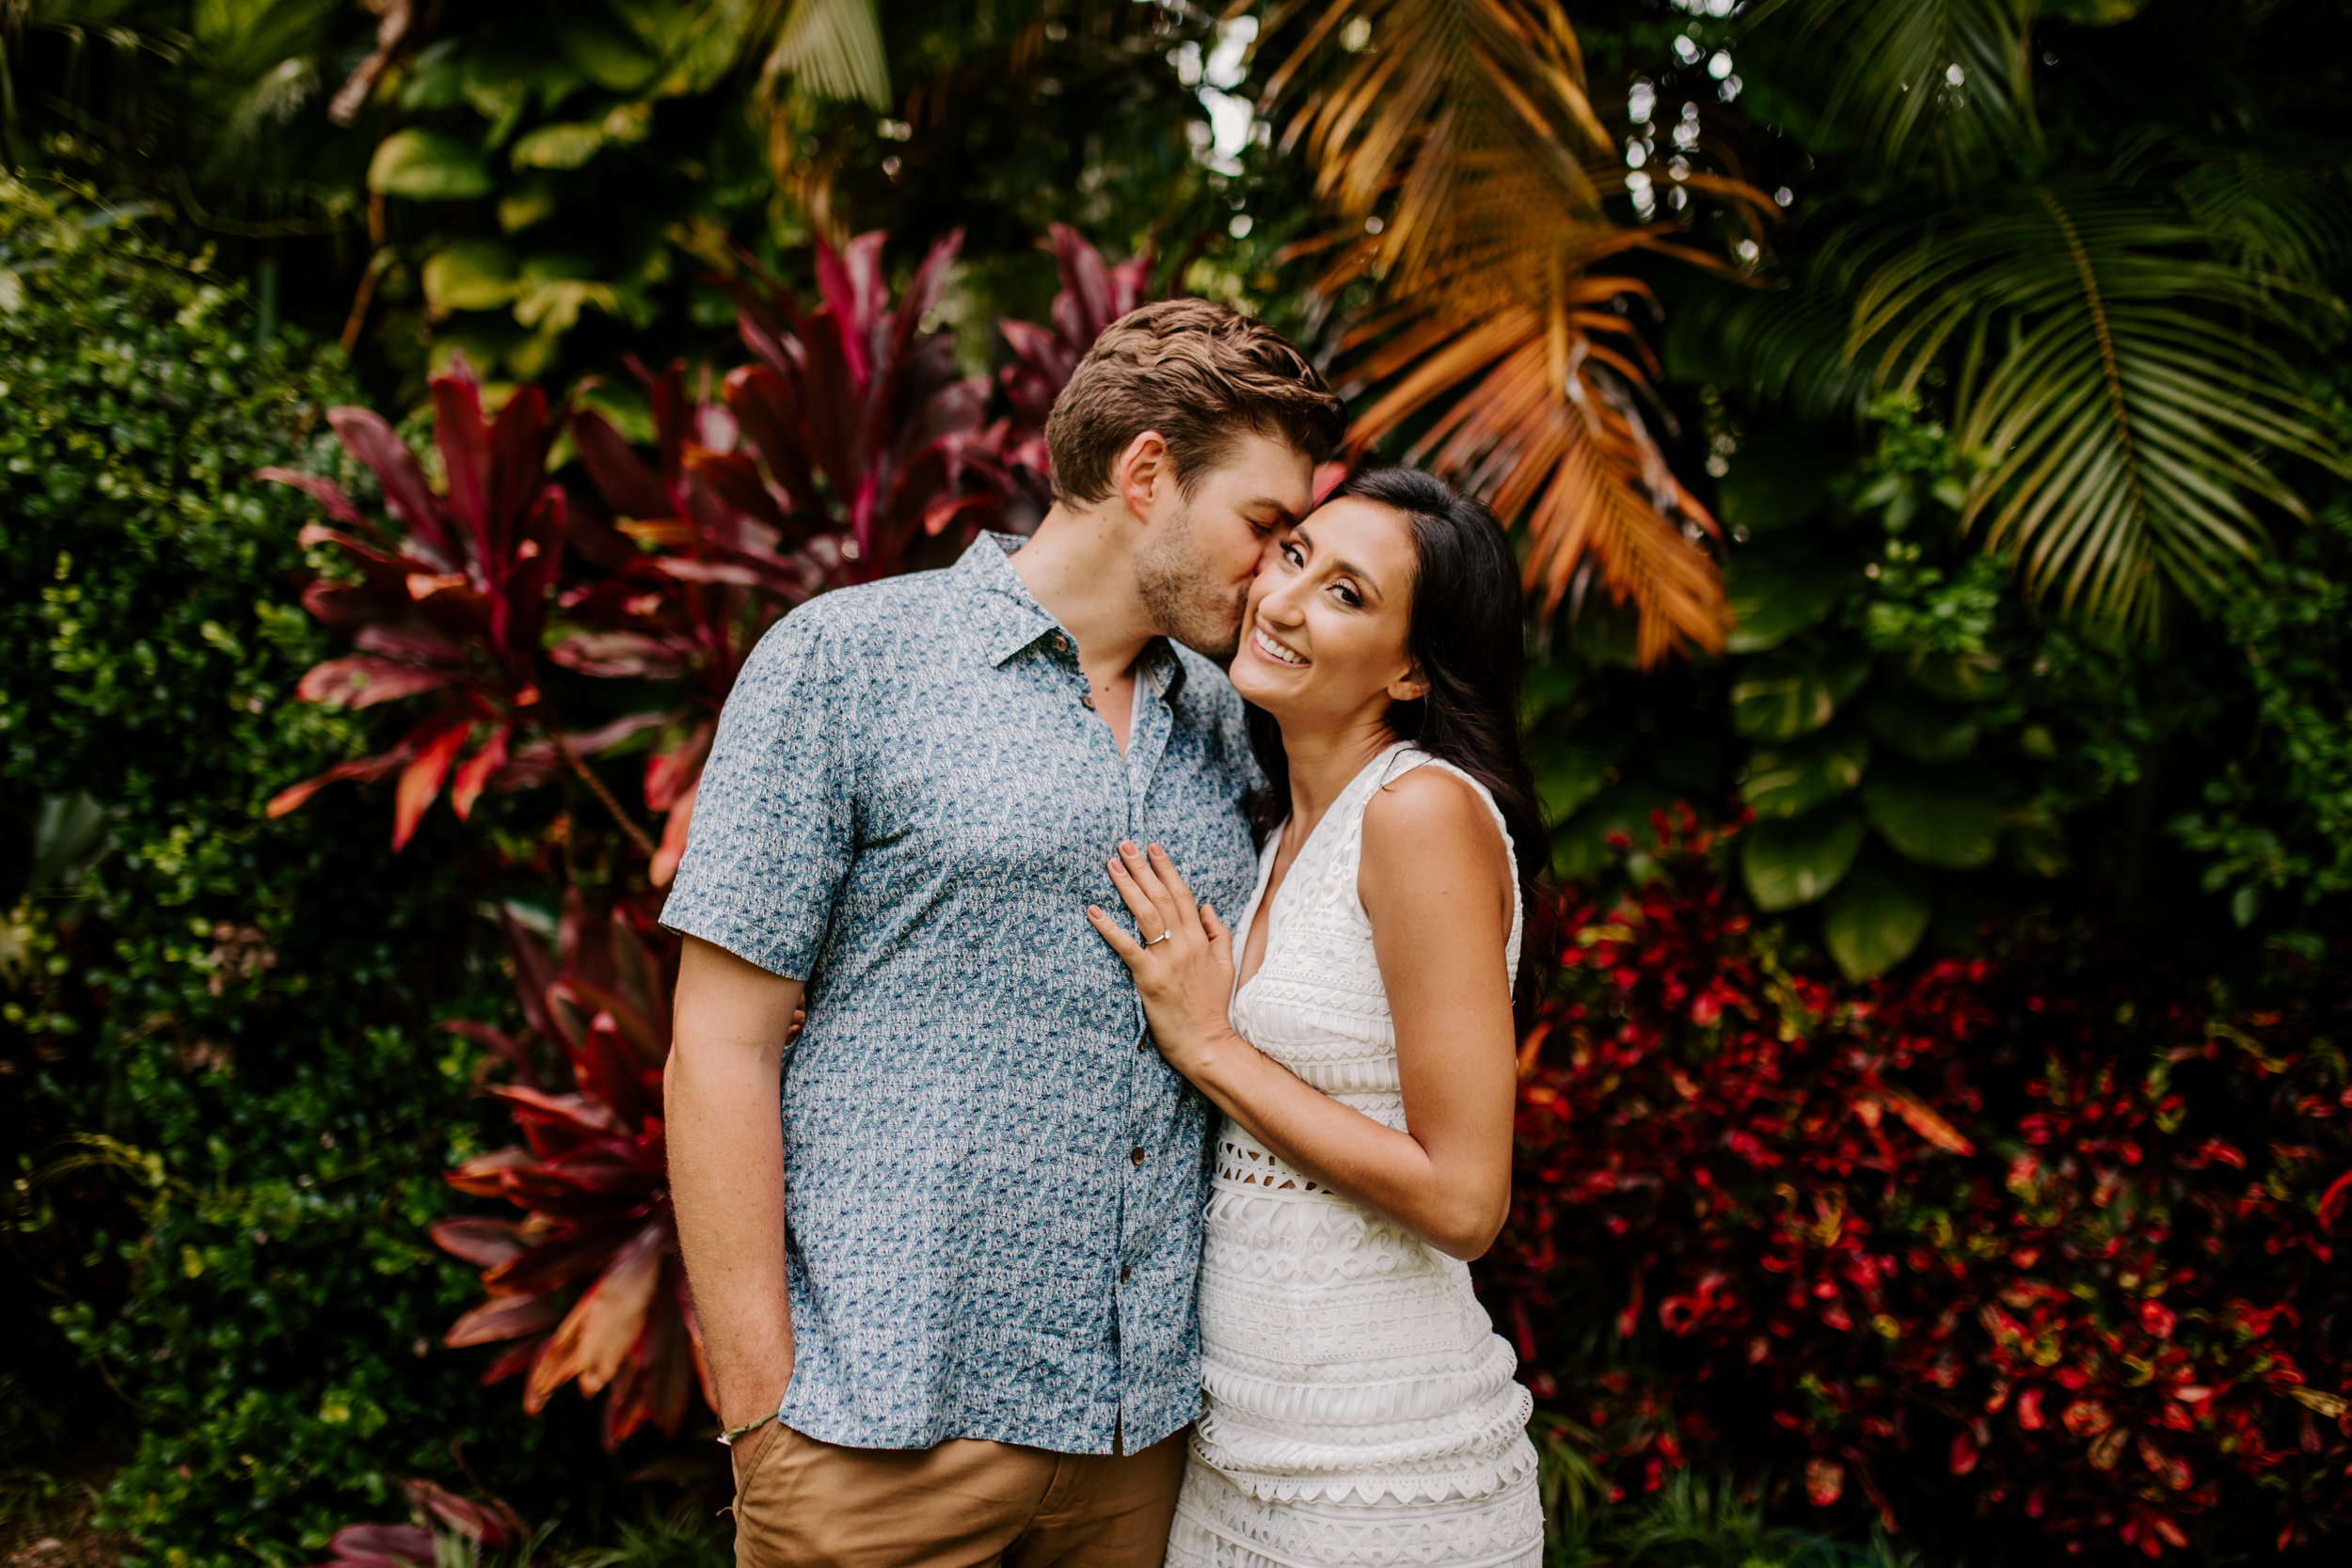 Sunken_Gardens-St_Pete-Allie_+_Eric-Engagement-Native_Expressions-90.jpg